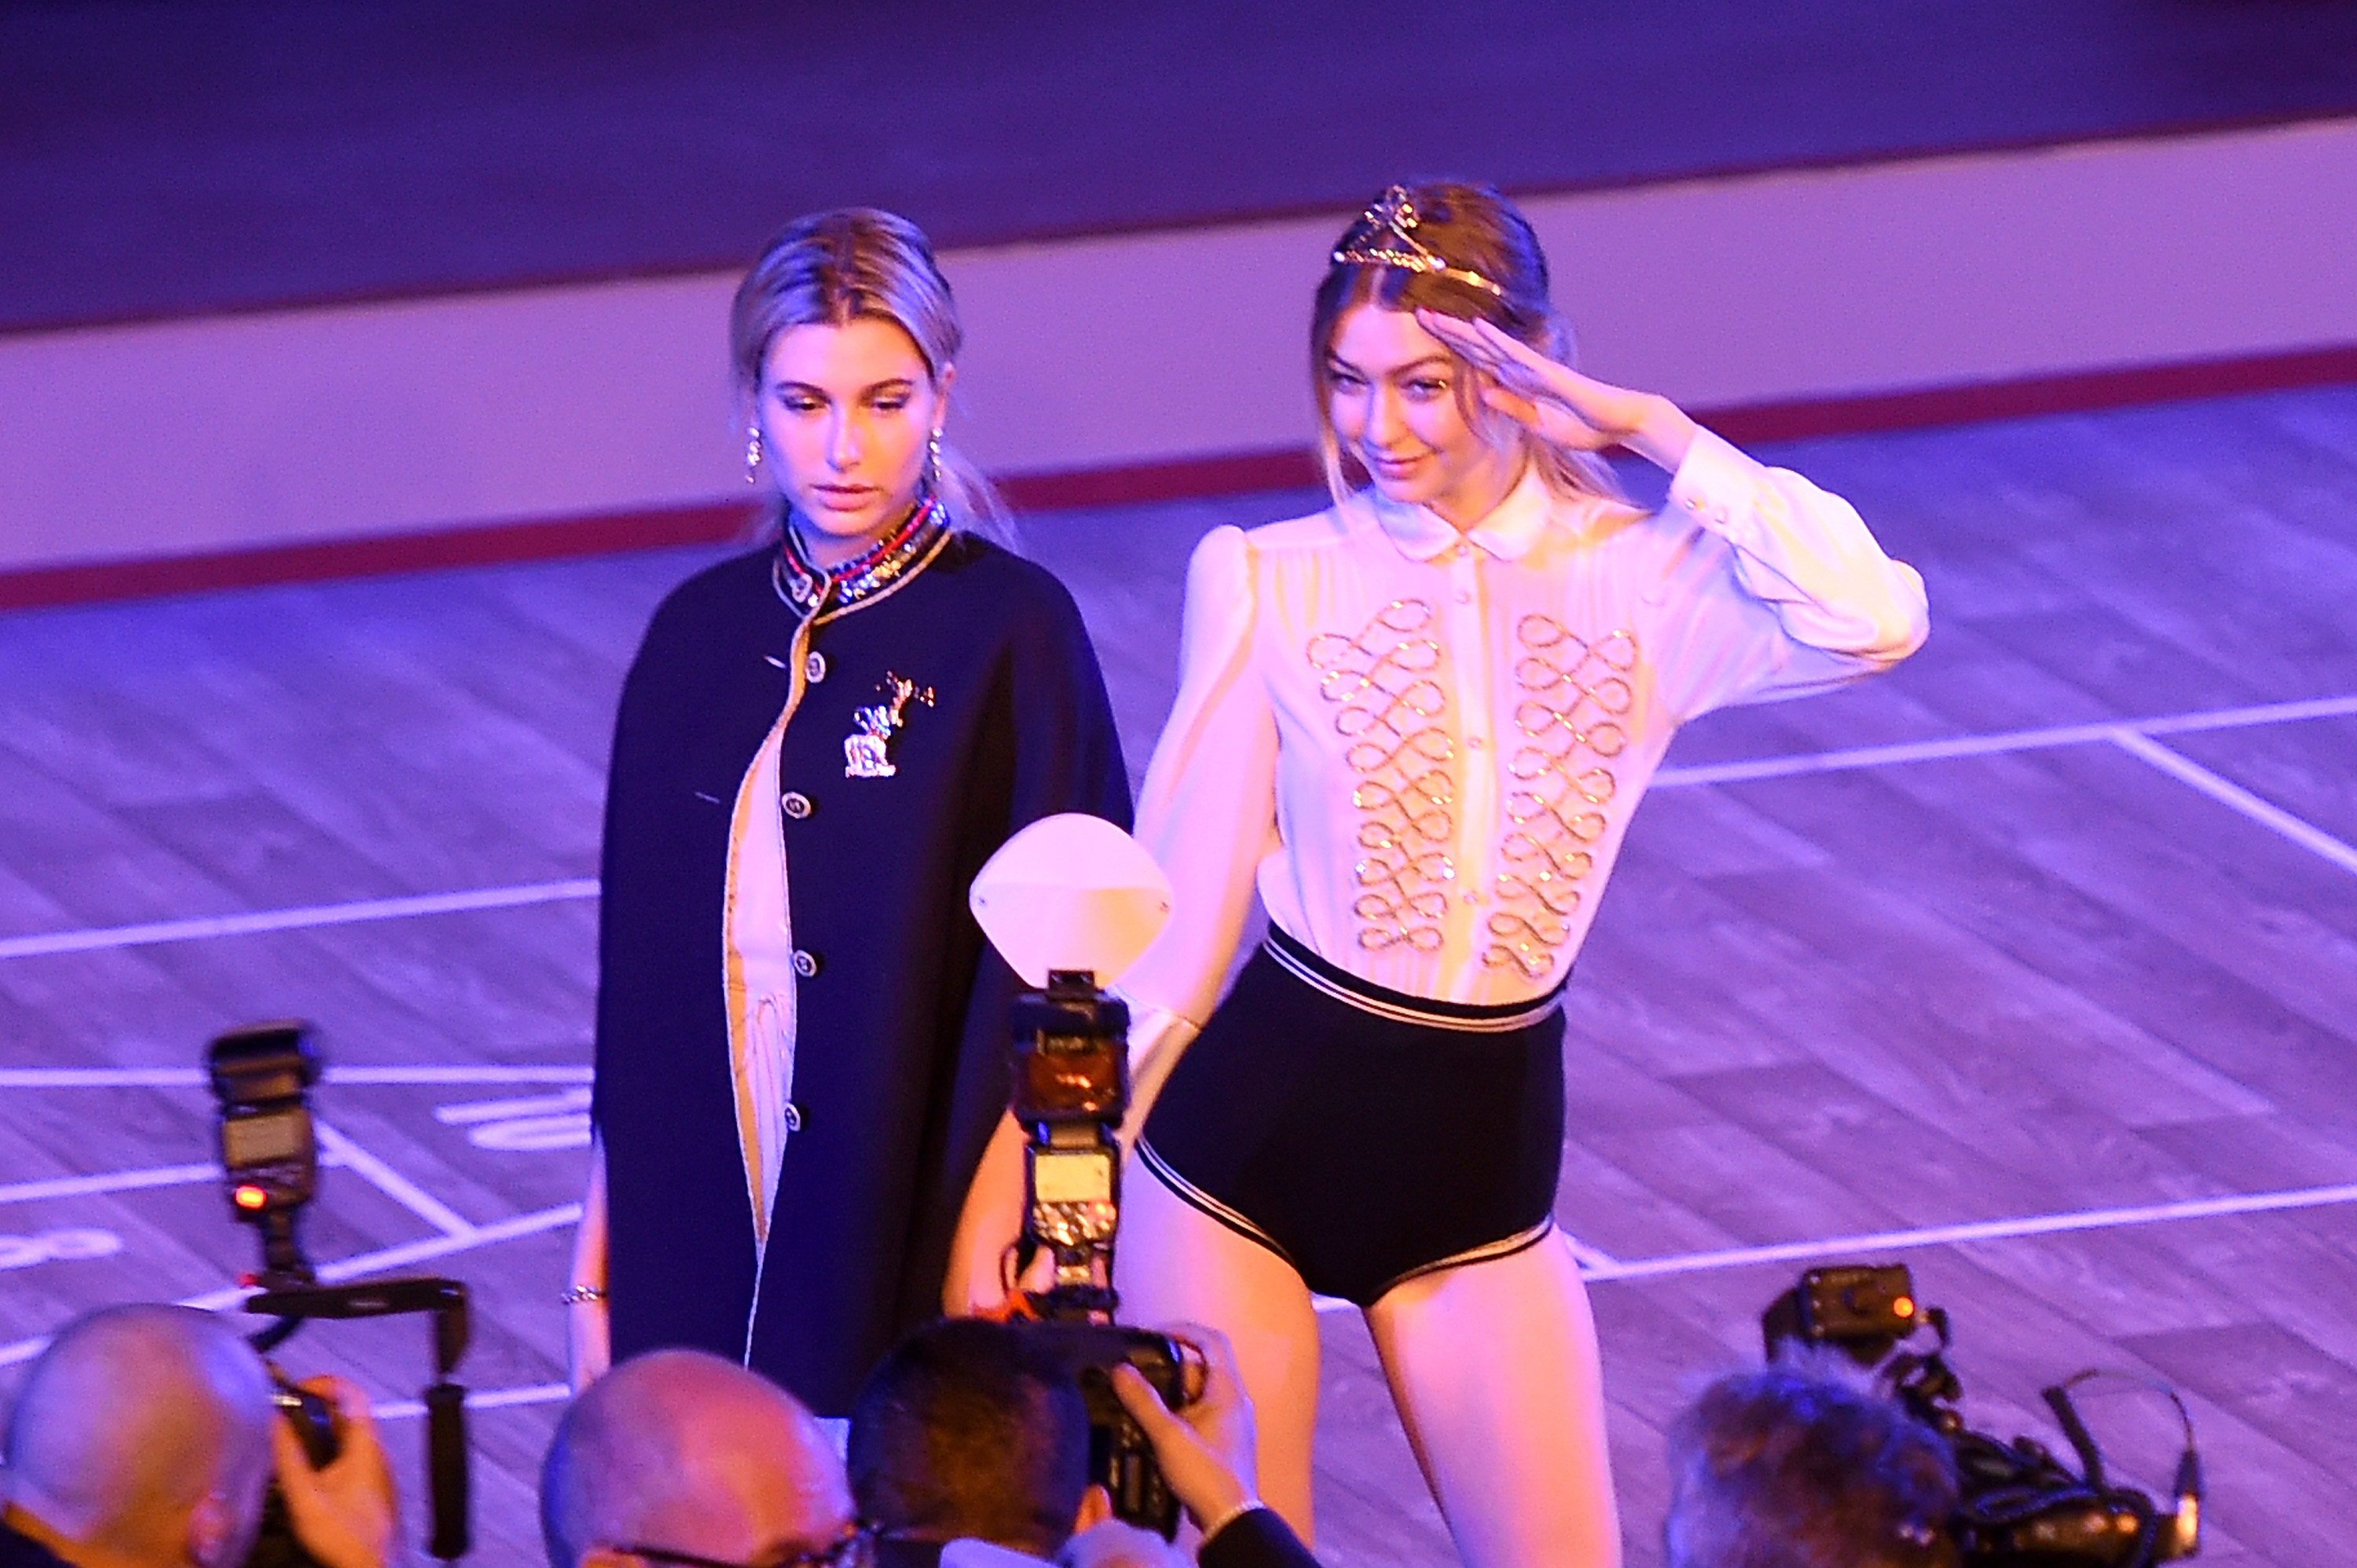 NEW YORK, NY - FEBRUARY 15: Models Hailey Baldwin (L) and Gigi Hadid pose backstage at the Tommy Hilfiger Women's Fall 2016 show during New York Fashion Week: The Shows at Park Avenue Armory on February 15, 2016 in New York City. (Photo by Nicholas Hunt/Getty Images for Tommy Hilfiger)